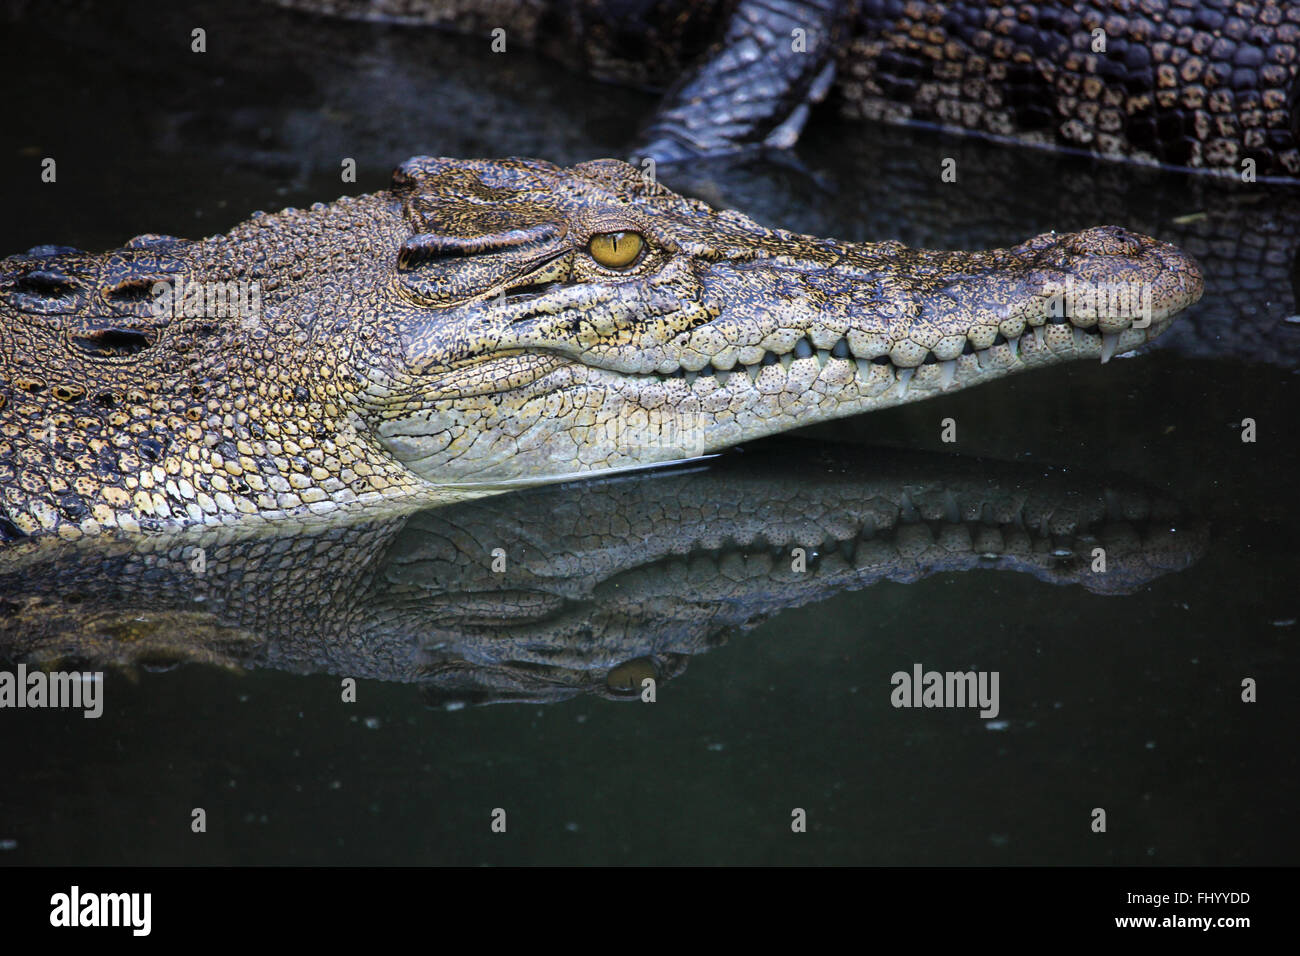 MIRI/MALAYSIA - 24 NOVEMBER 2015: Detail of a crocodile's head coming out of the fresh water in Borneo - Stock Image